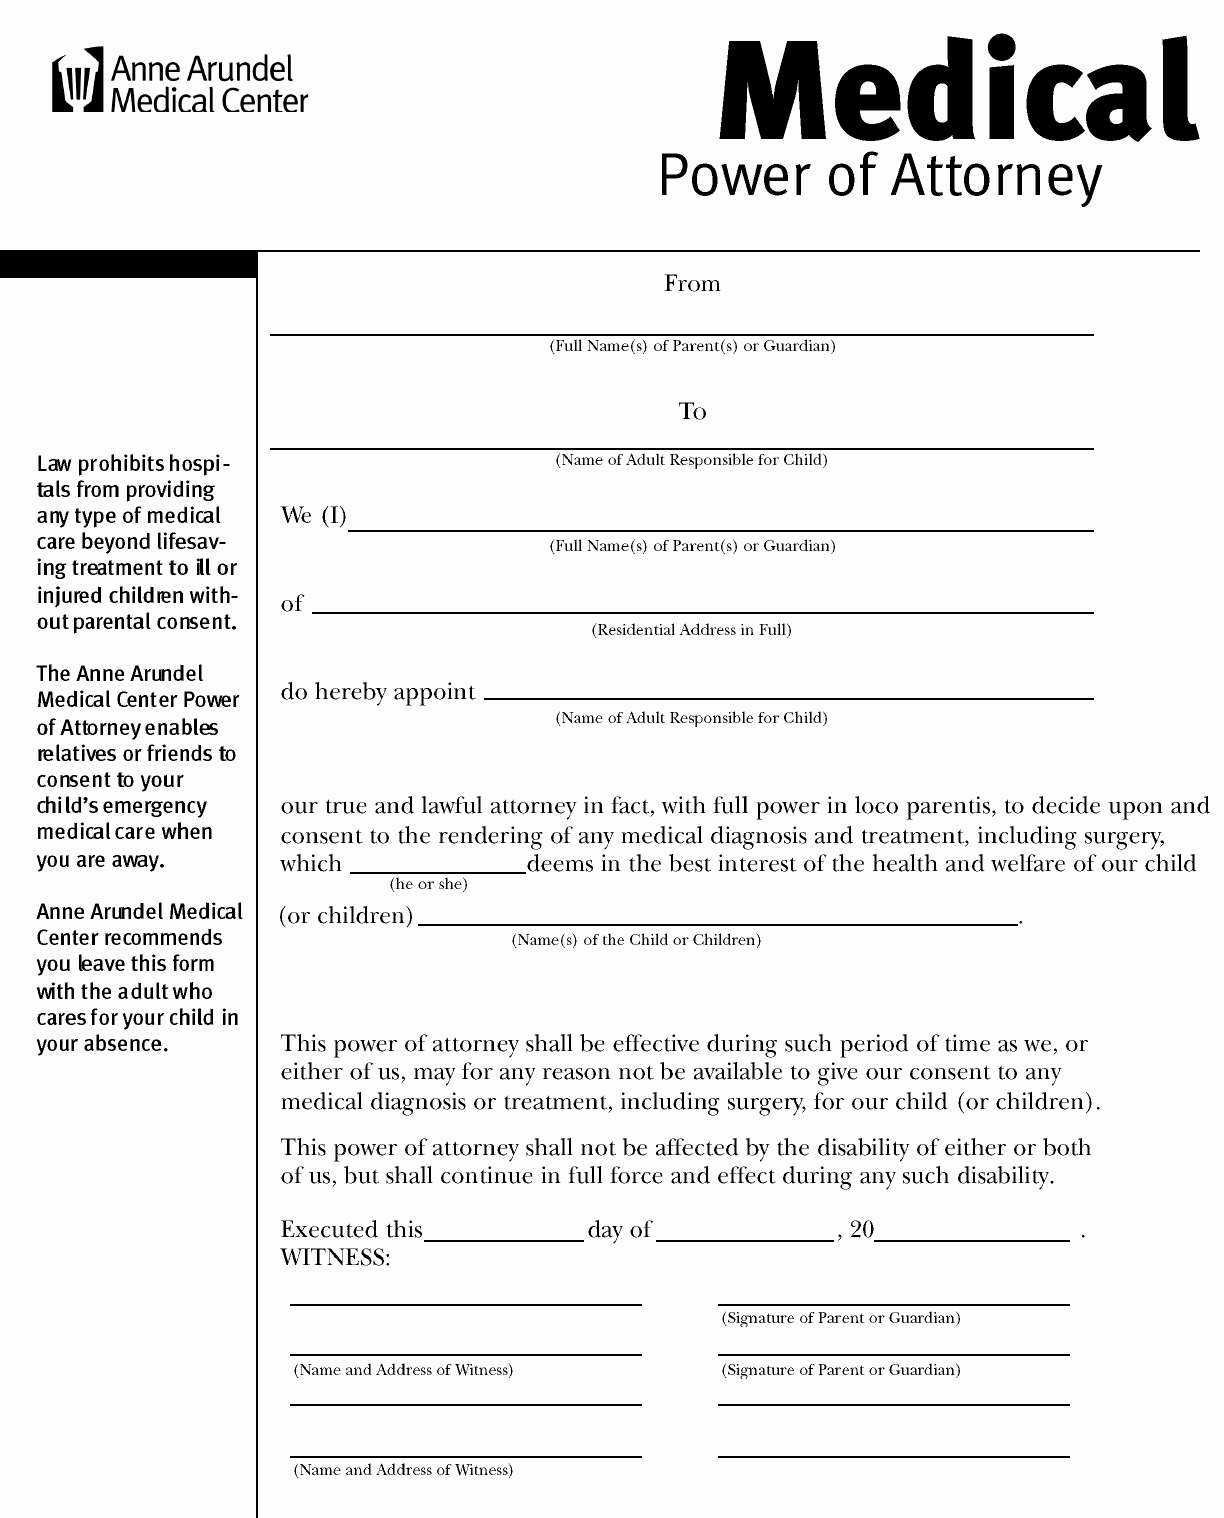 Free Medical Power Of attorney Elegant Download Maryland Medical Power Of attorney form for Free